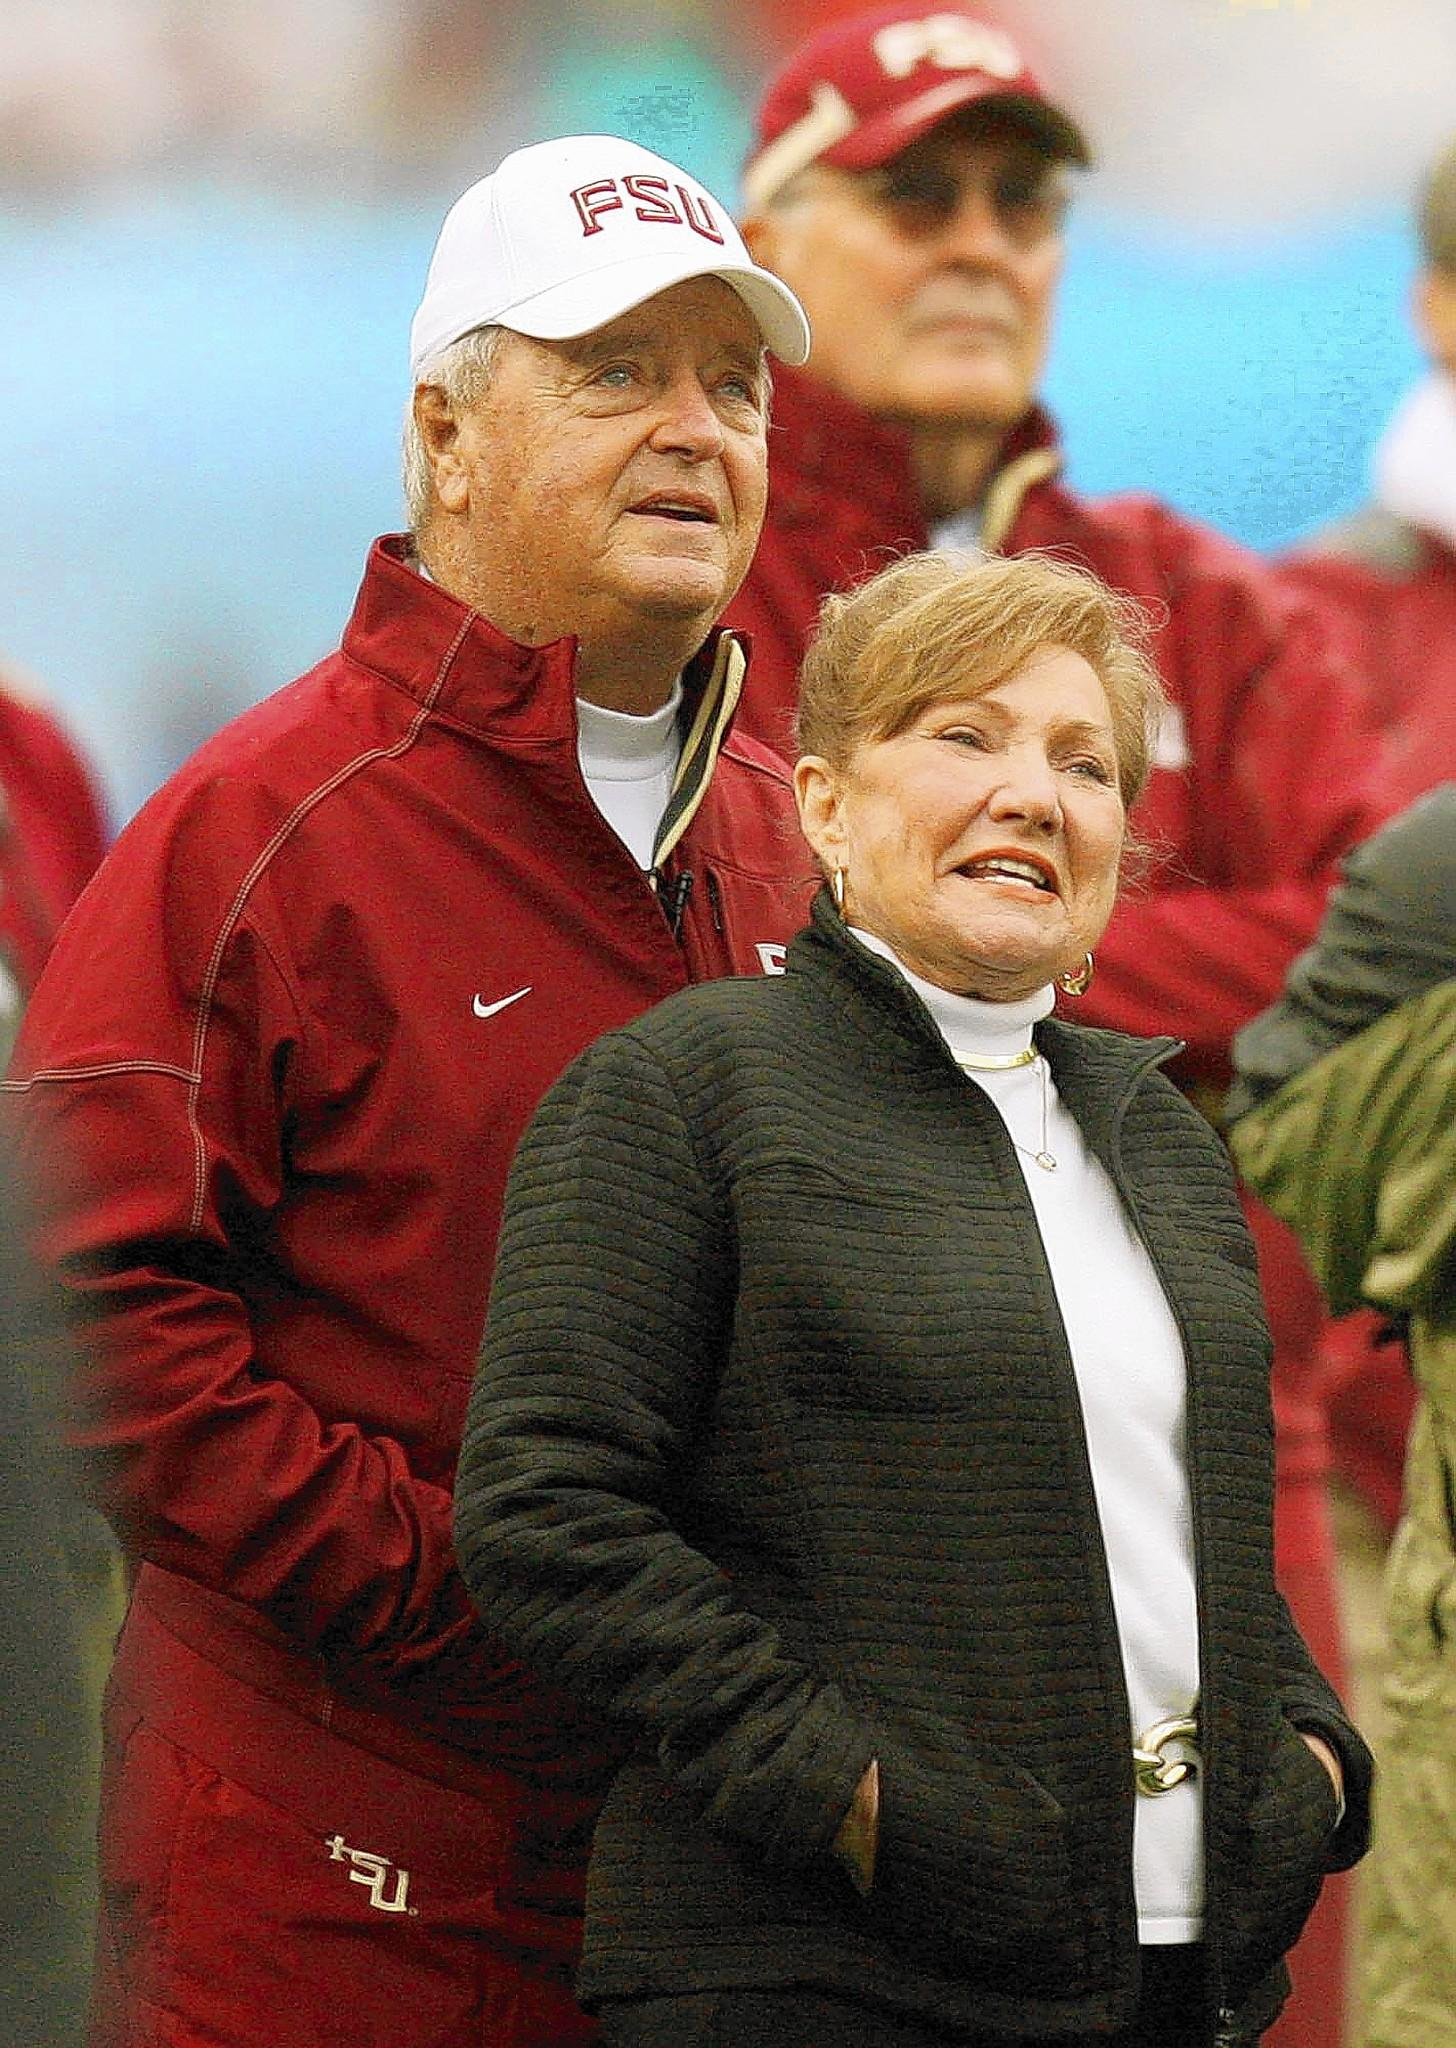 Florida State head coach Bobby Bowden and his wife, Ann, watch a tribute to him on the monitor during the Gator Bowl at Jacksonville Municipal Stadium on Friday, January 1, 2010.